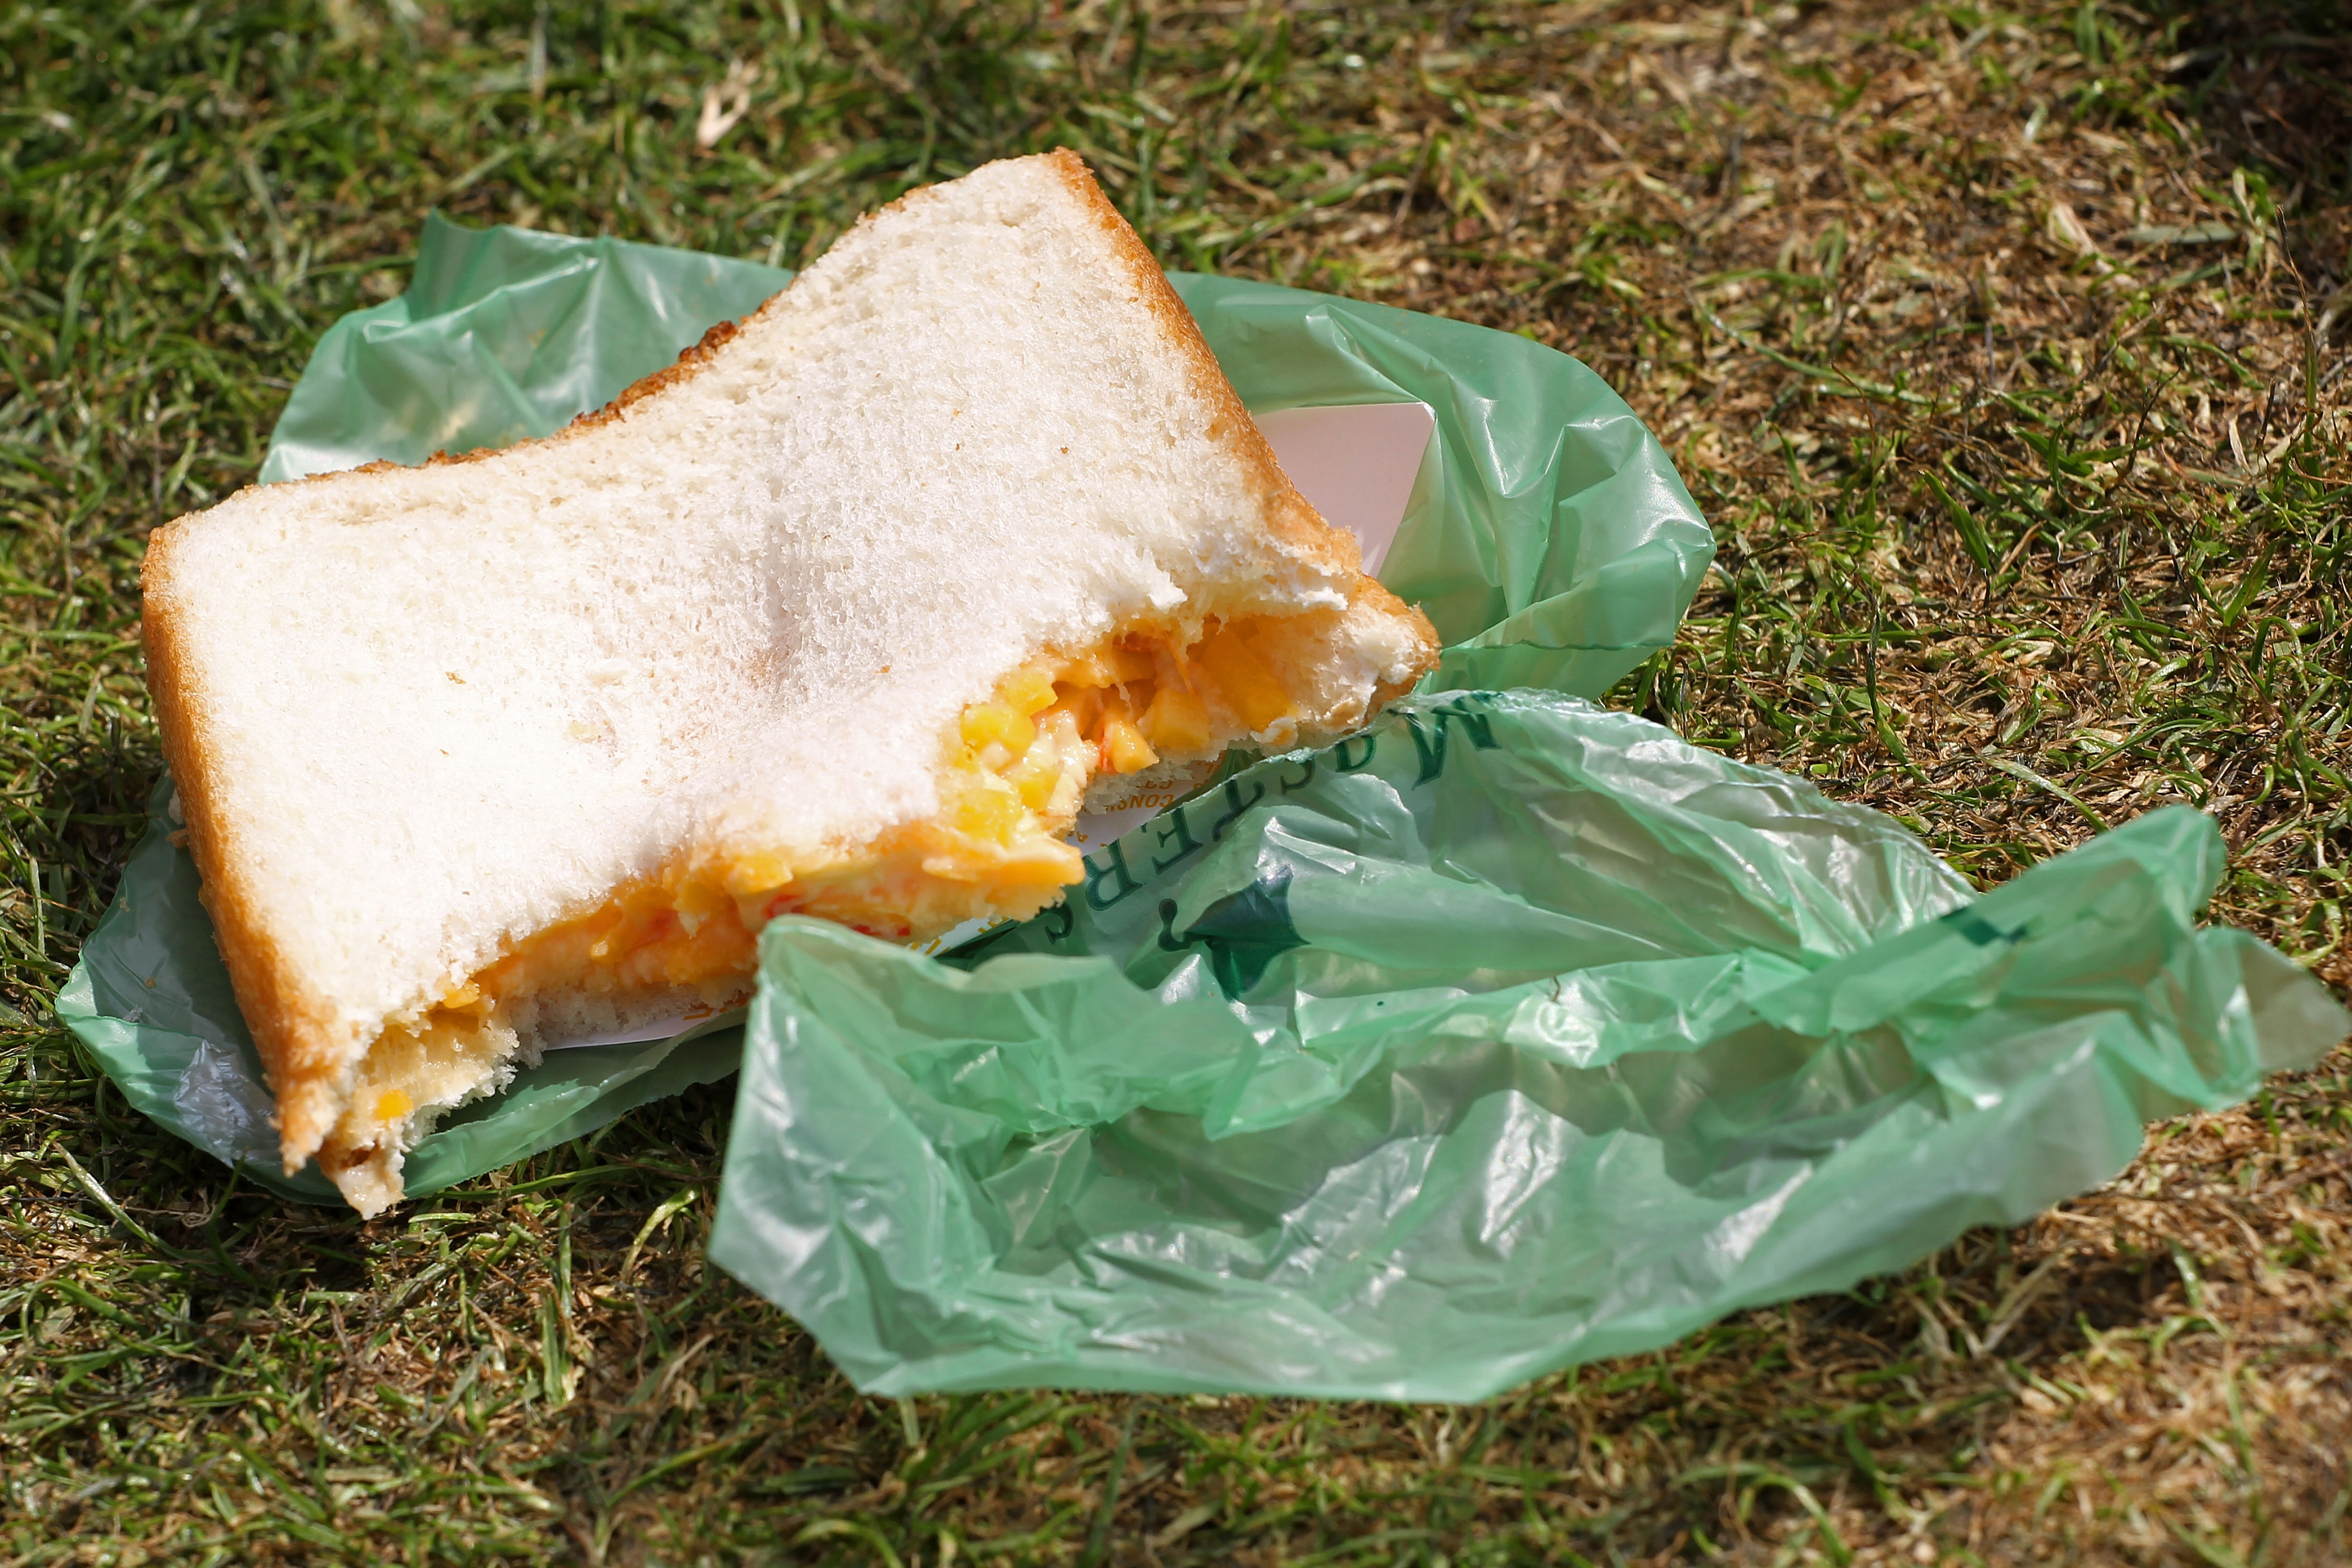 Augusta National's famous pimento cheese sandwich.